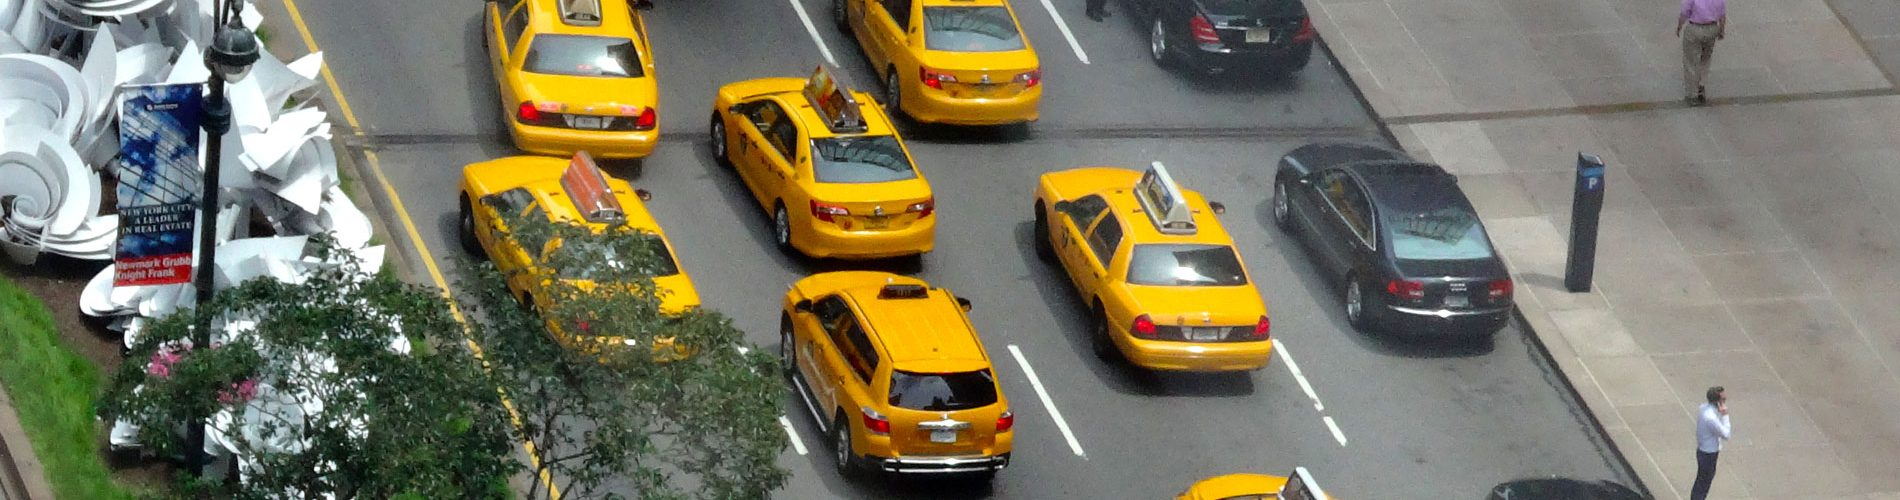 NYC-yellow-cabs-header